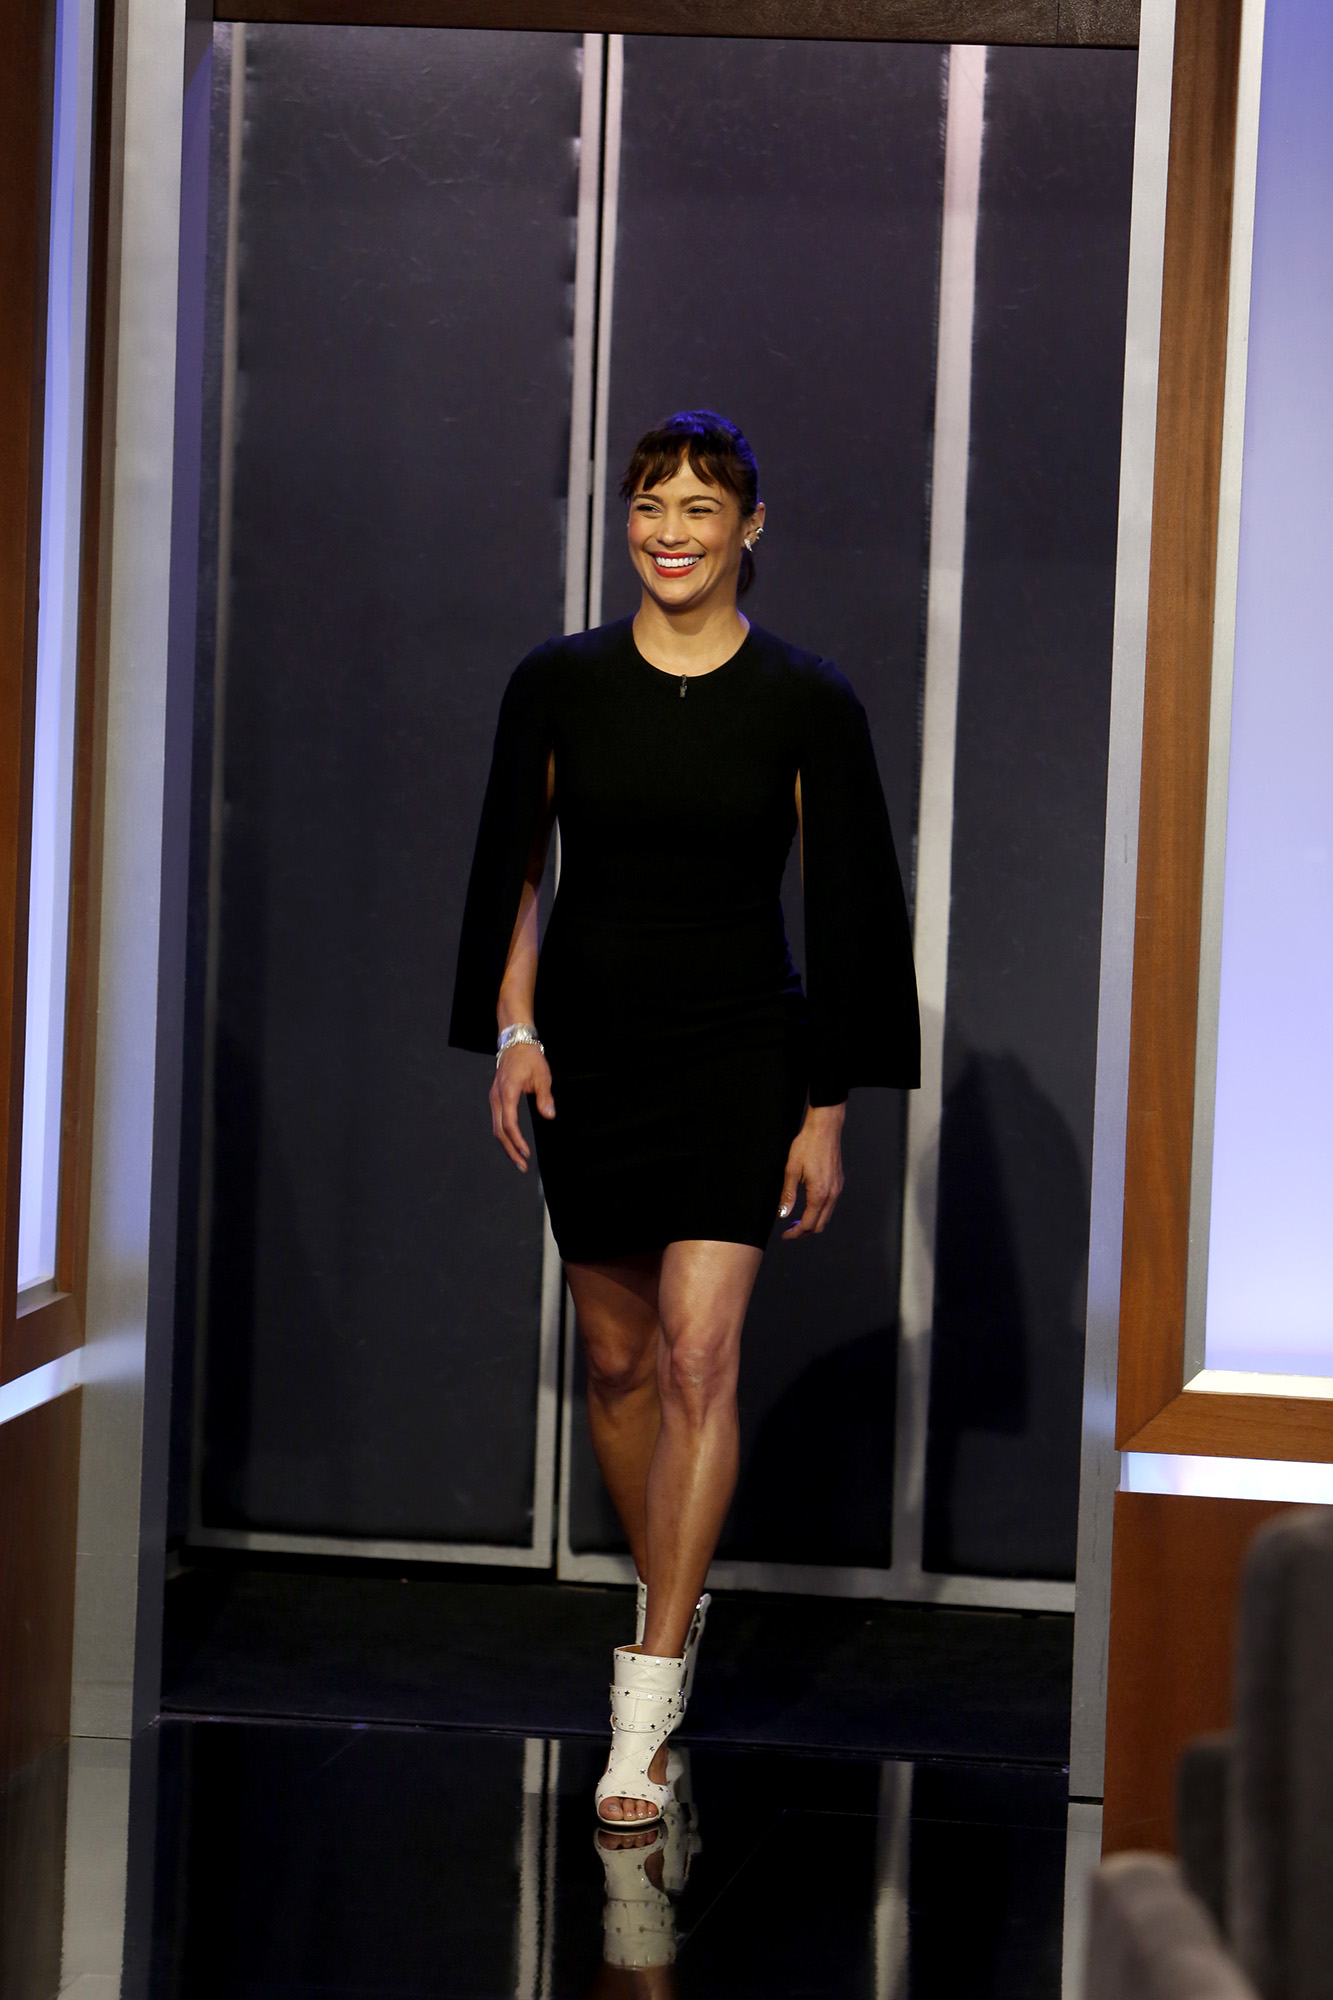 In Case You Missed It: Paula Patton On Jimmy Kimmel Live!